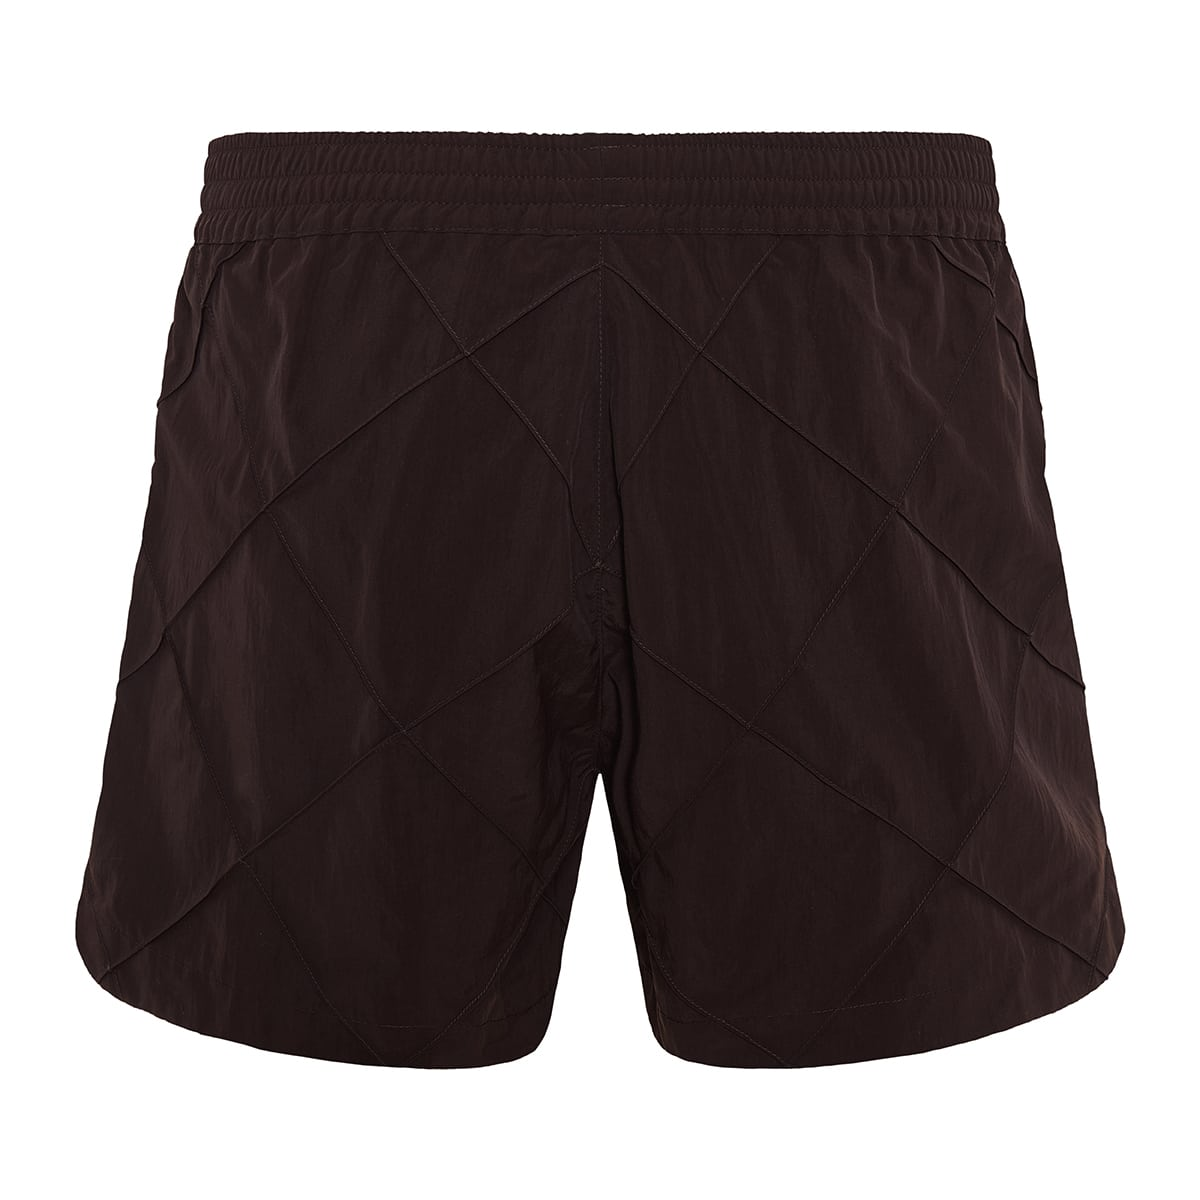 Quilted-effect swim shorts